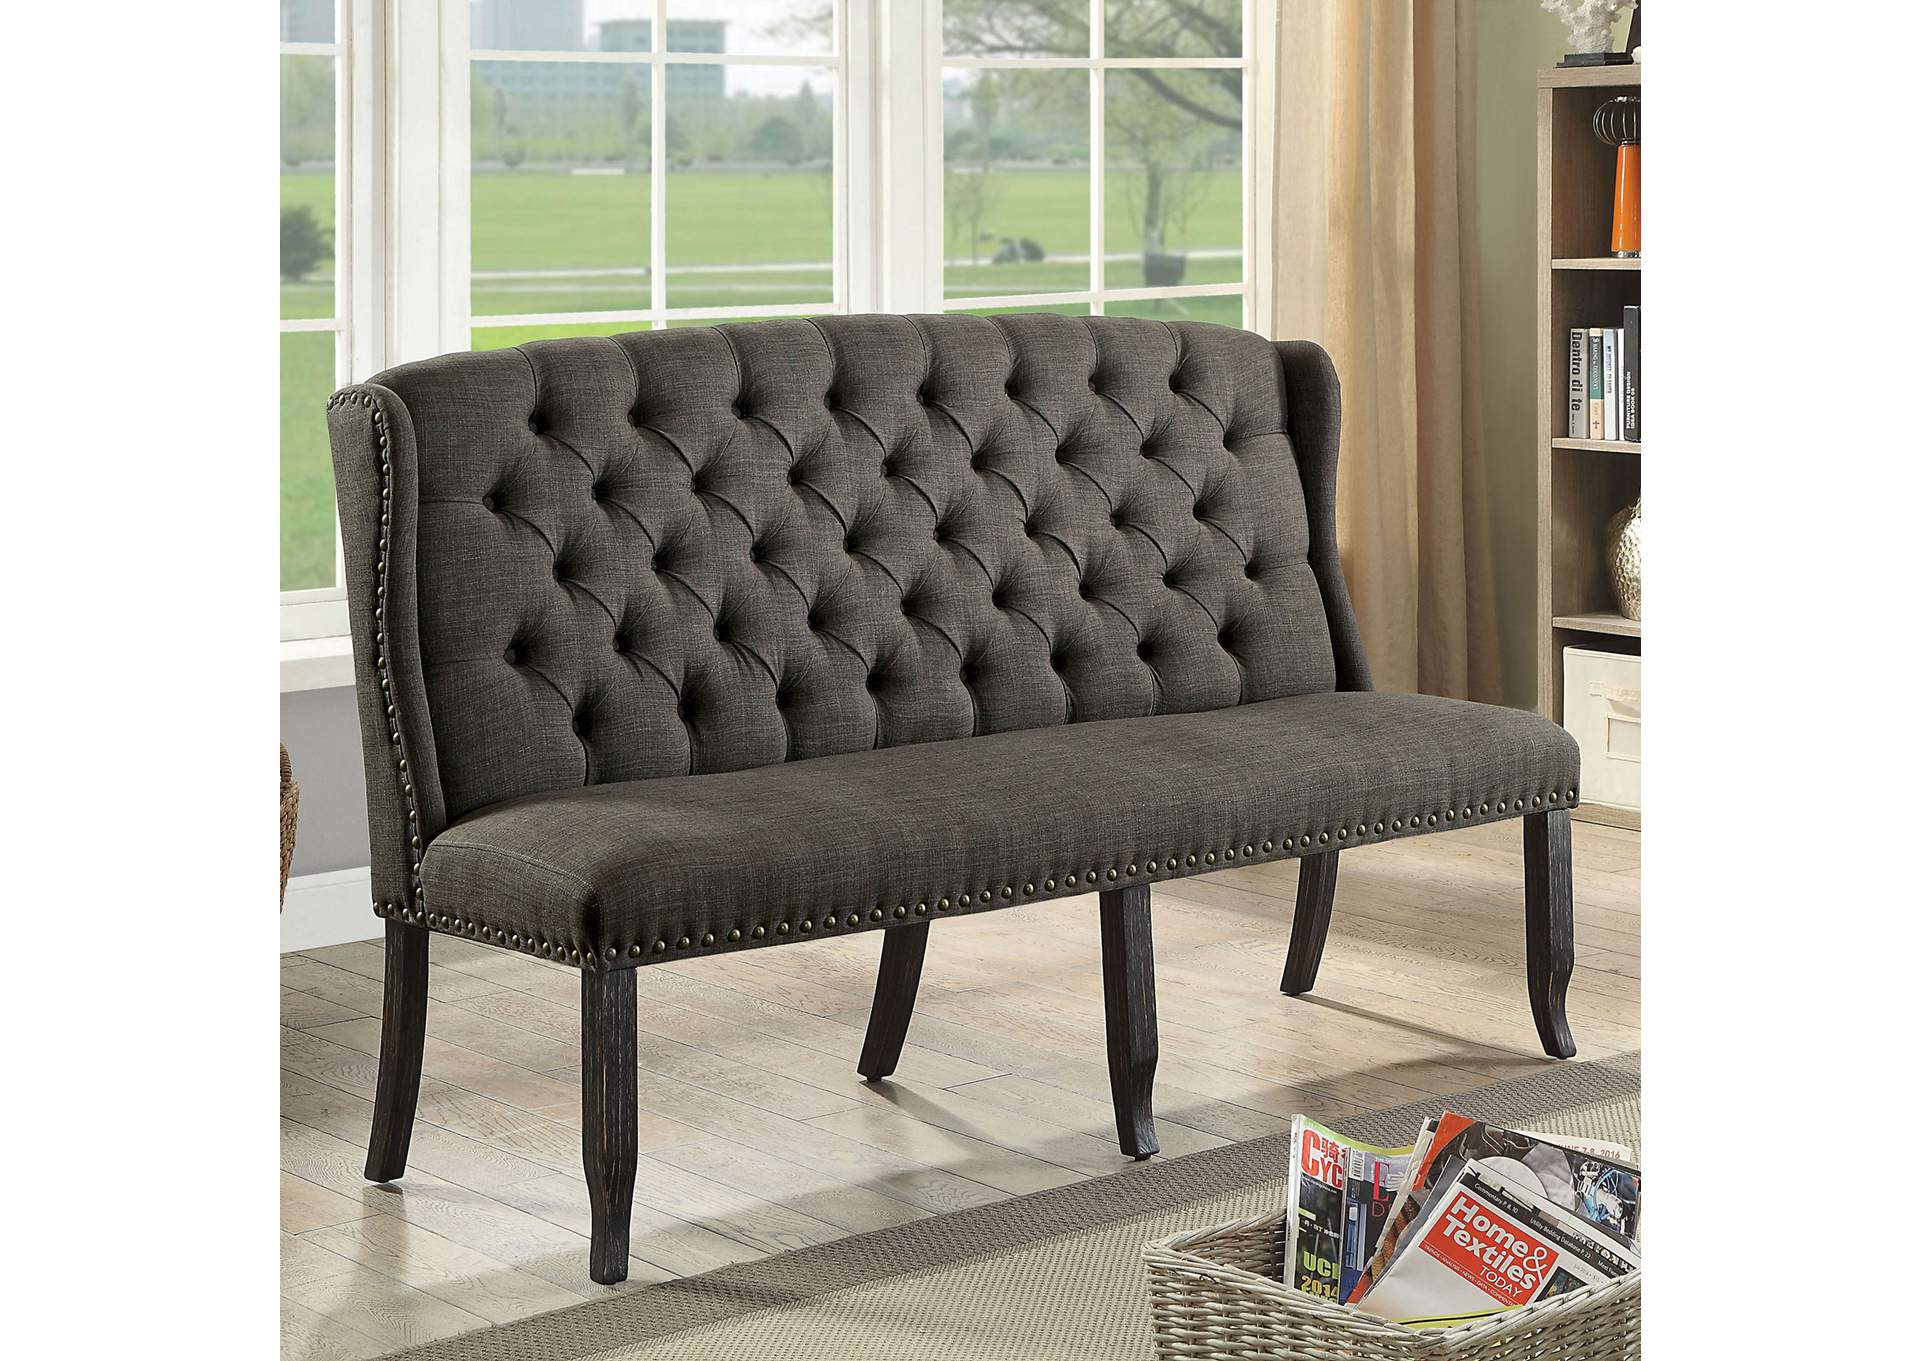 Sania Antique Black 3-Seater Loveseat Bench,Furniture of America